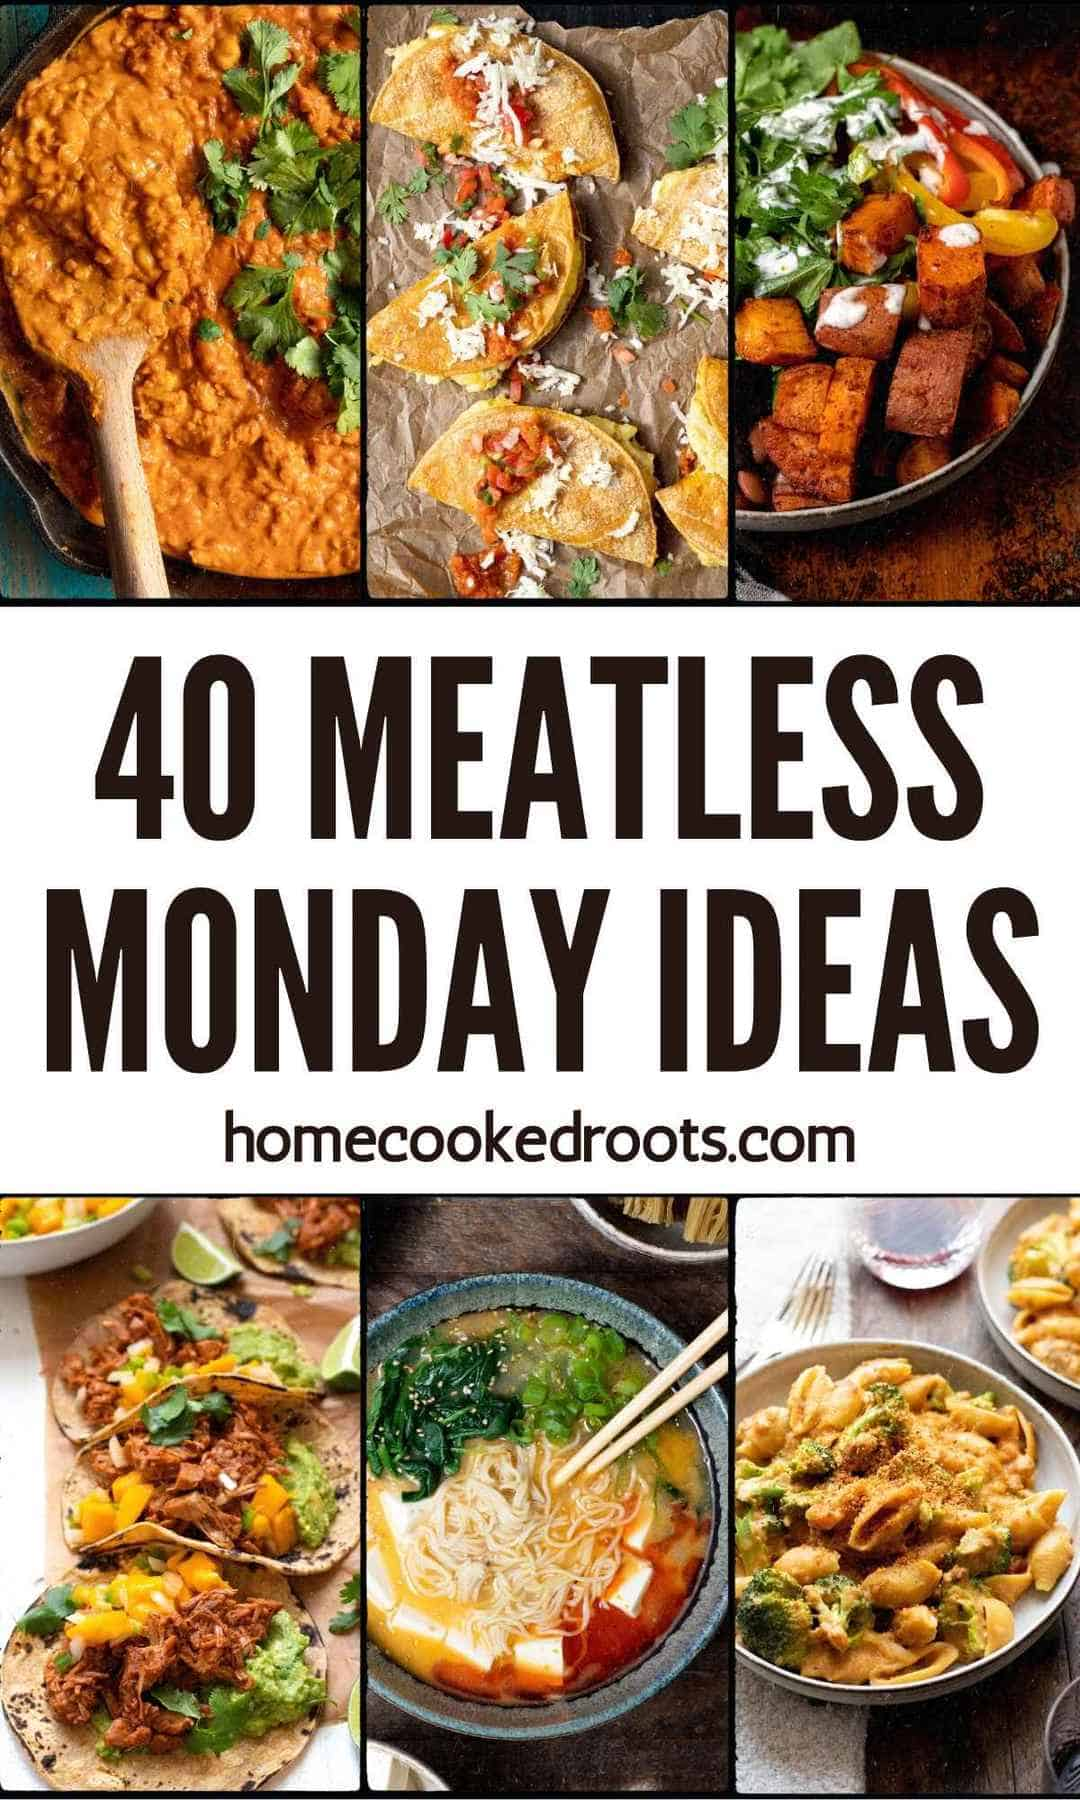 Meatless Monday Ideas Photo Collage with white banner and black text.